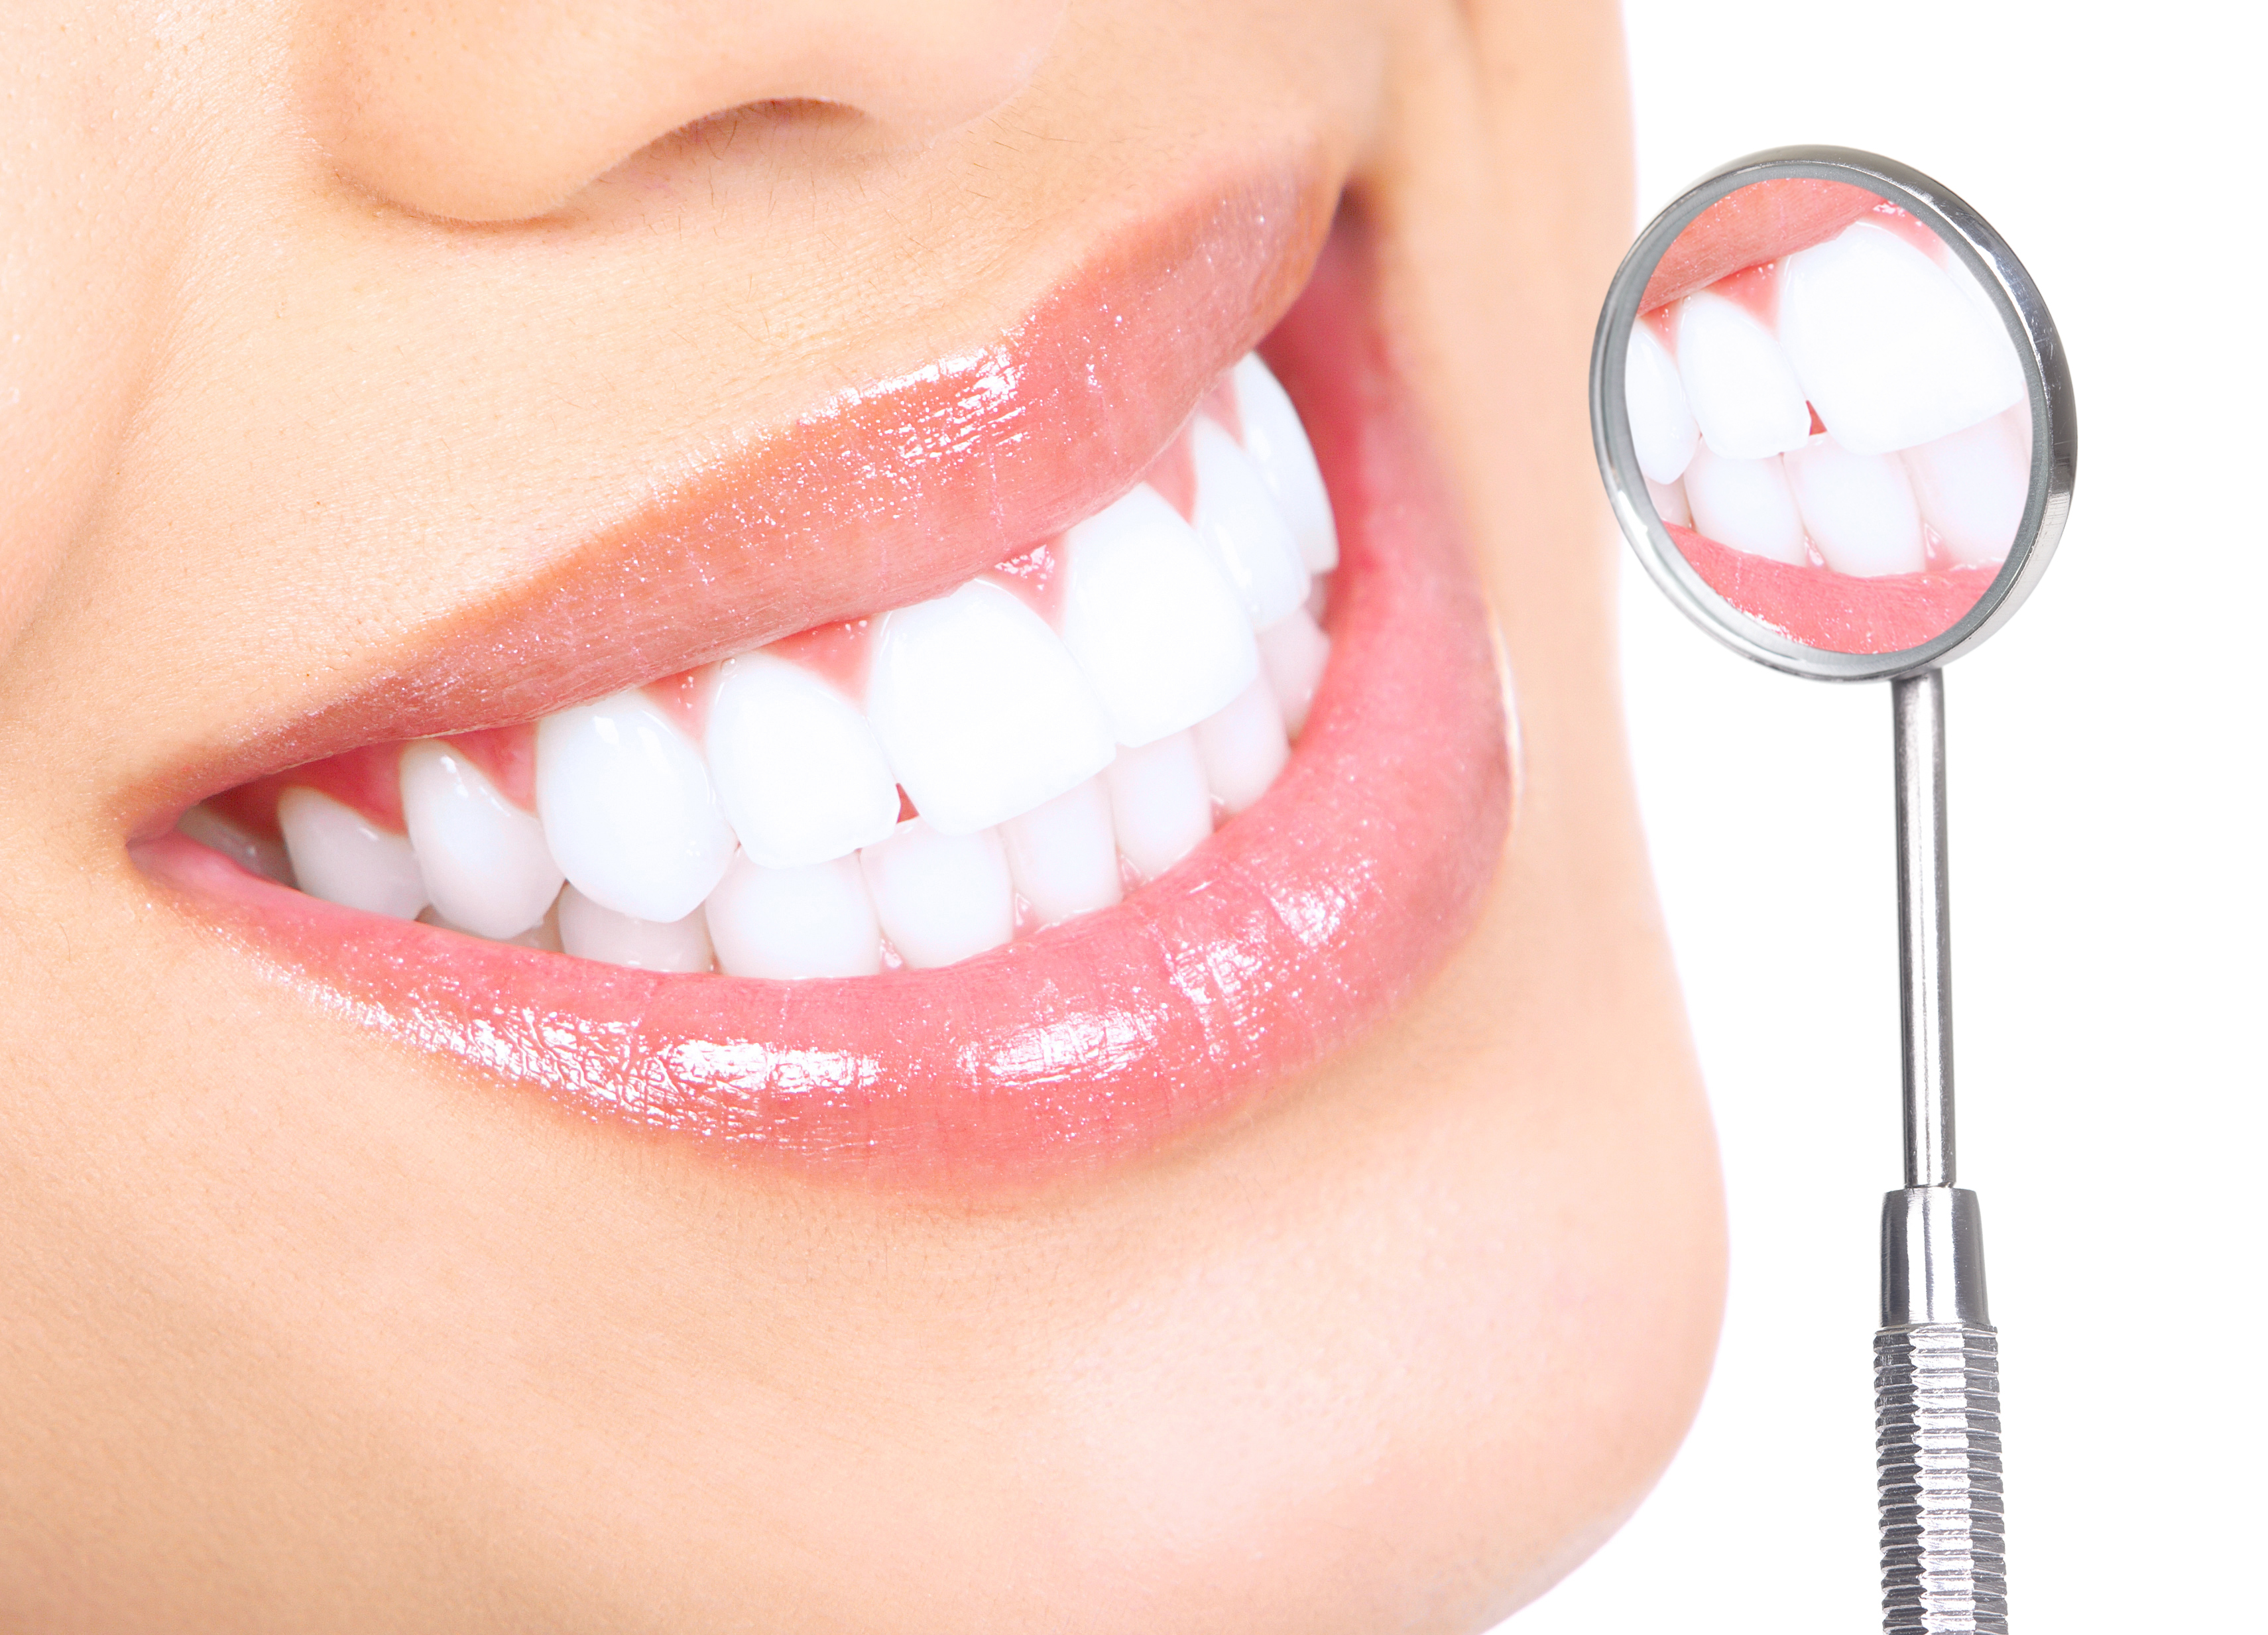 Products to avoid if you want to keep your teeth healthy